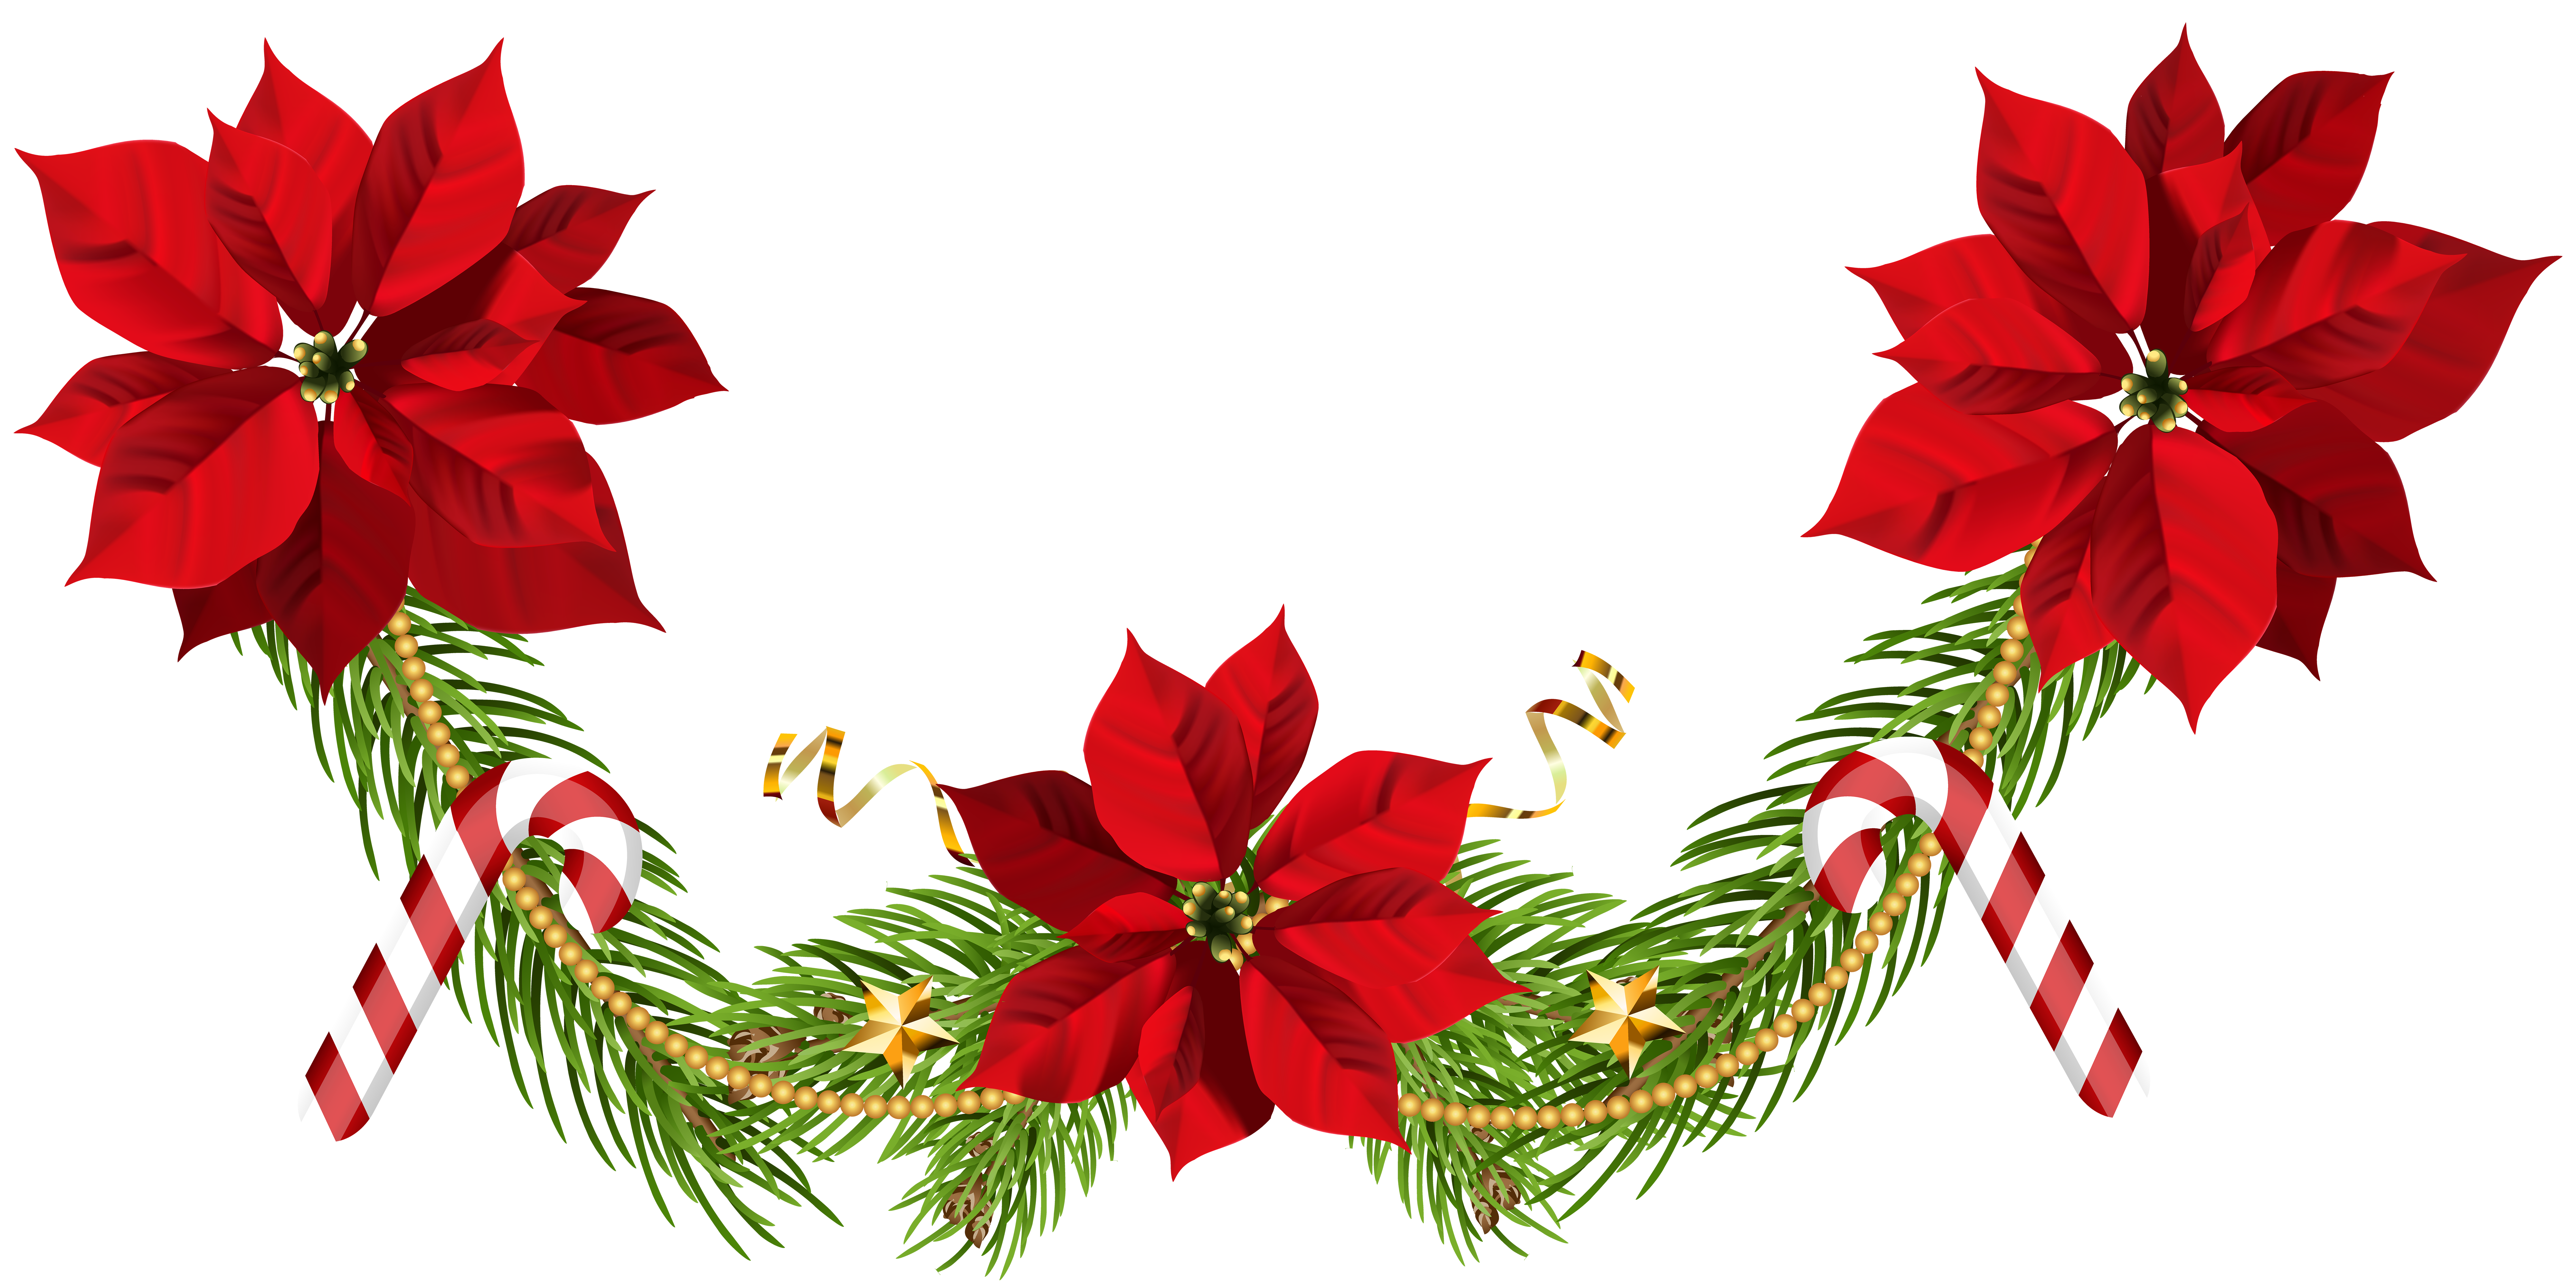 Free clipart christmas flowers clipart royalty free stock Christmas Poinsettias Garland Clip Art PNG Image | Gallery ... clipart royalty free stock